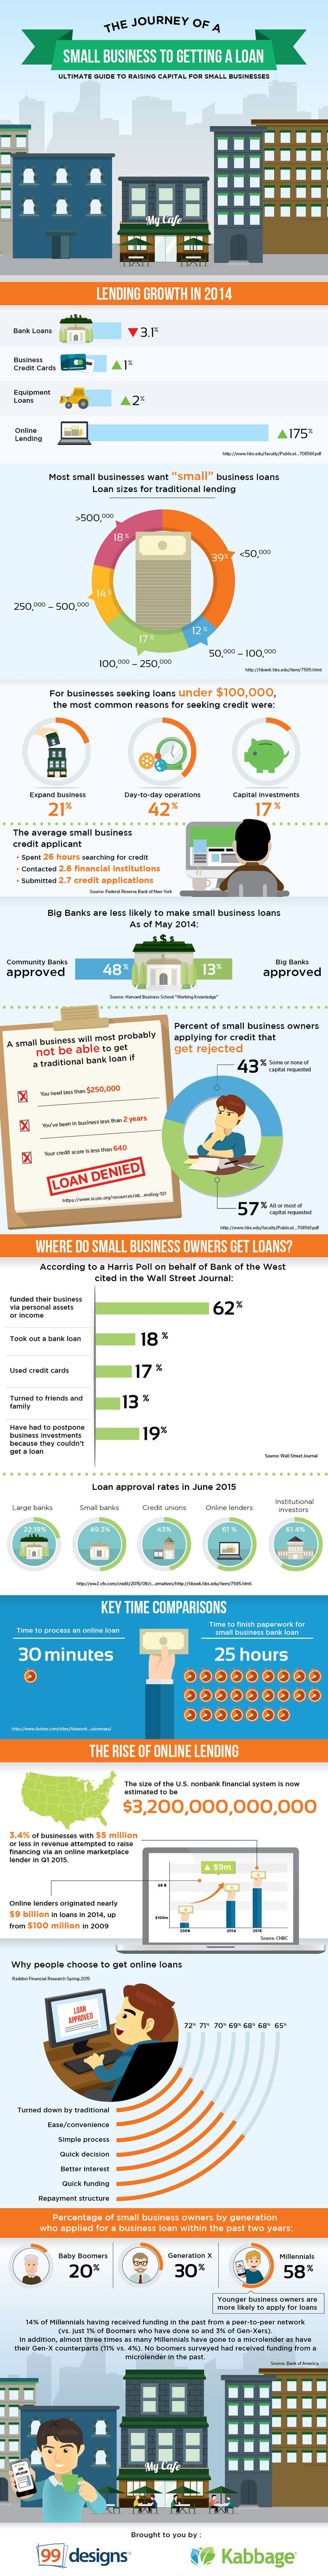 fritzR - Small business loan by the numbers infographic